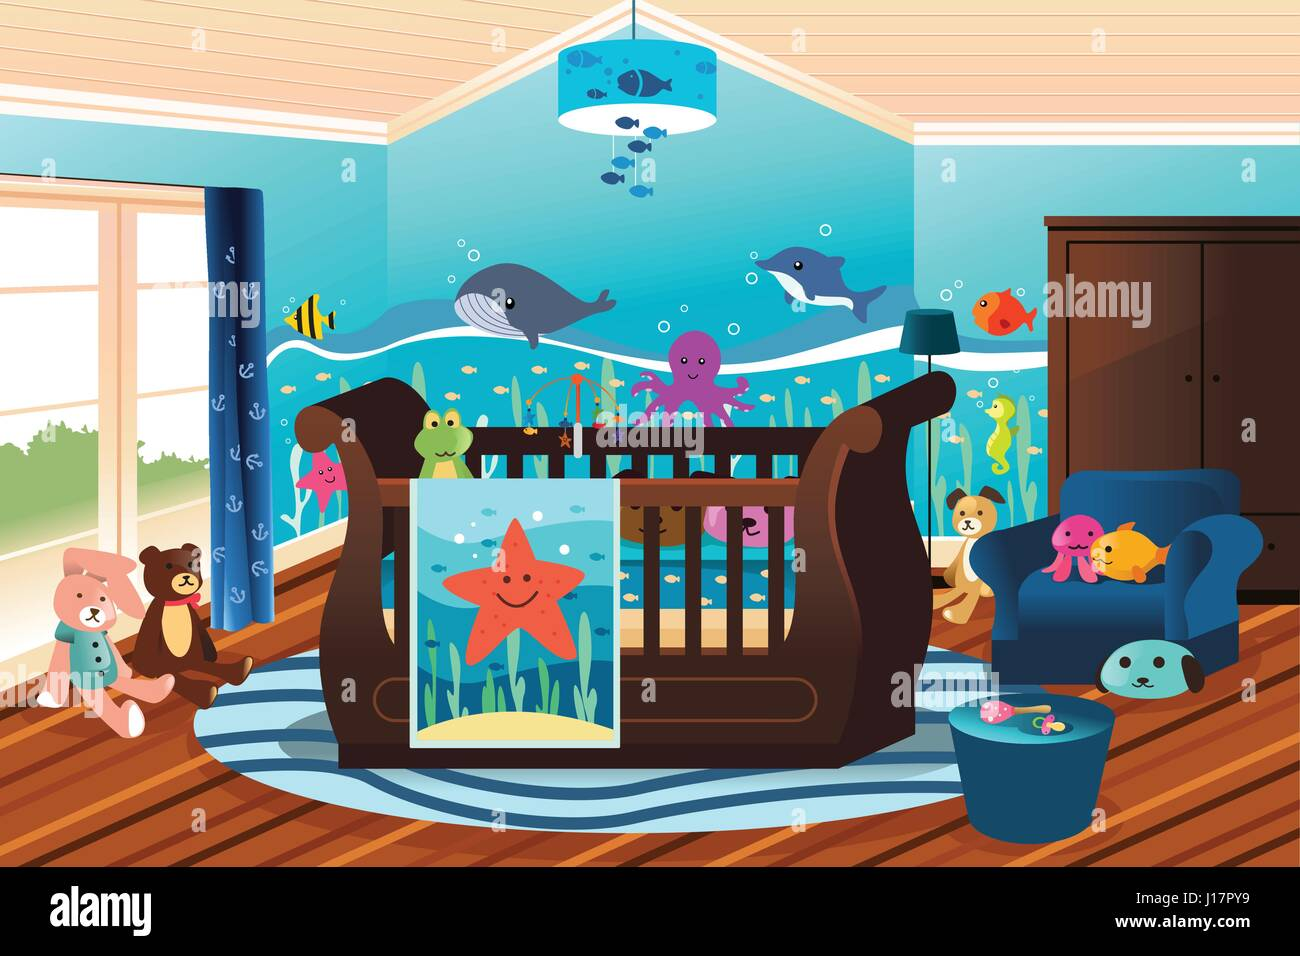 A vector illustration of baby nursery room with undersea theme - Stock Vector